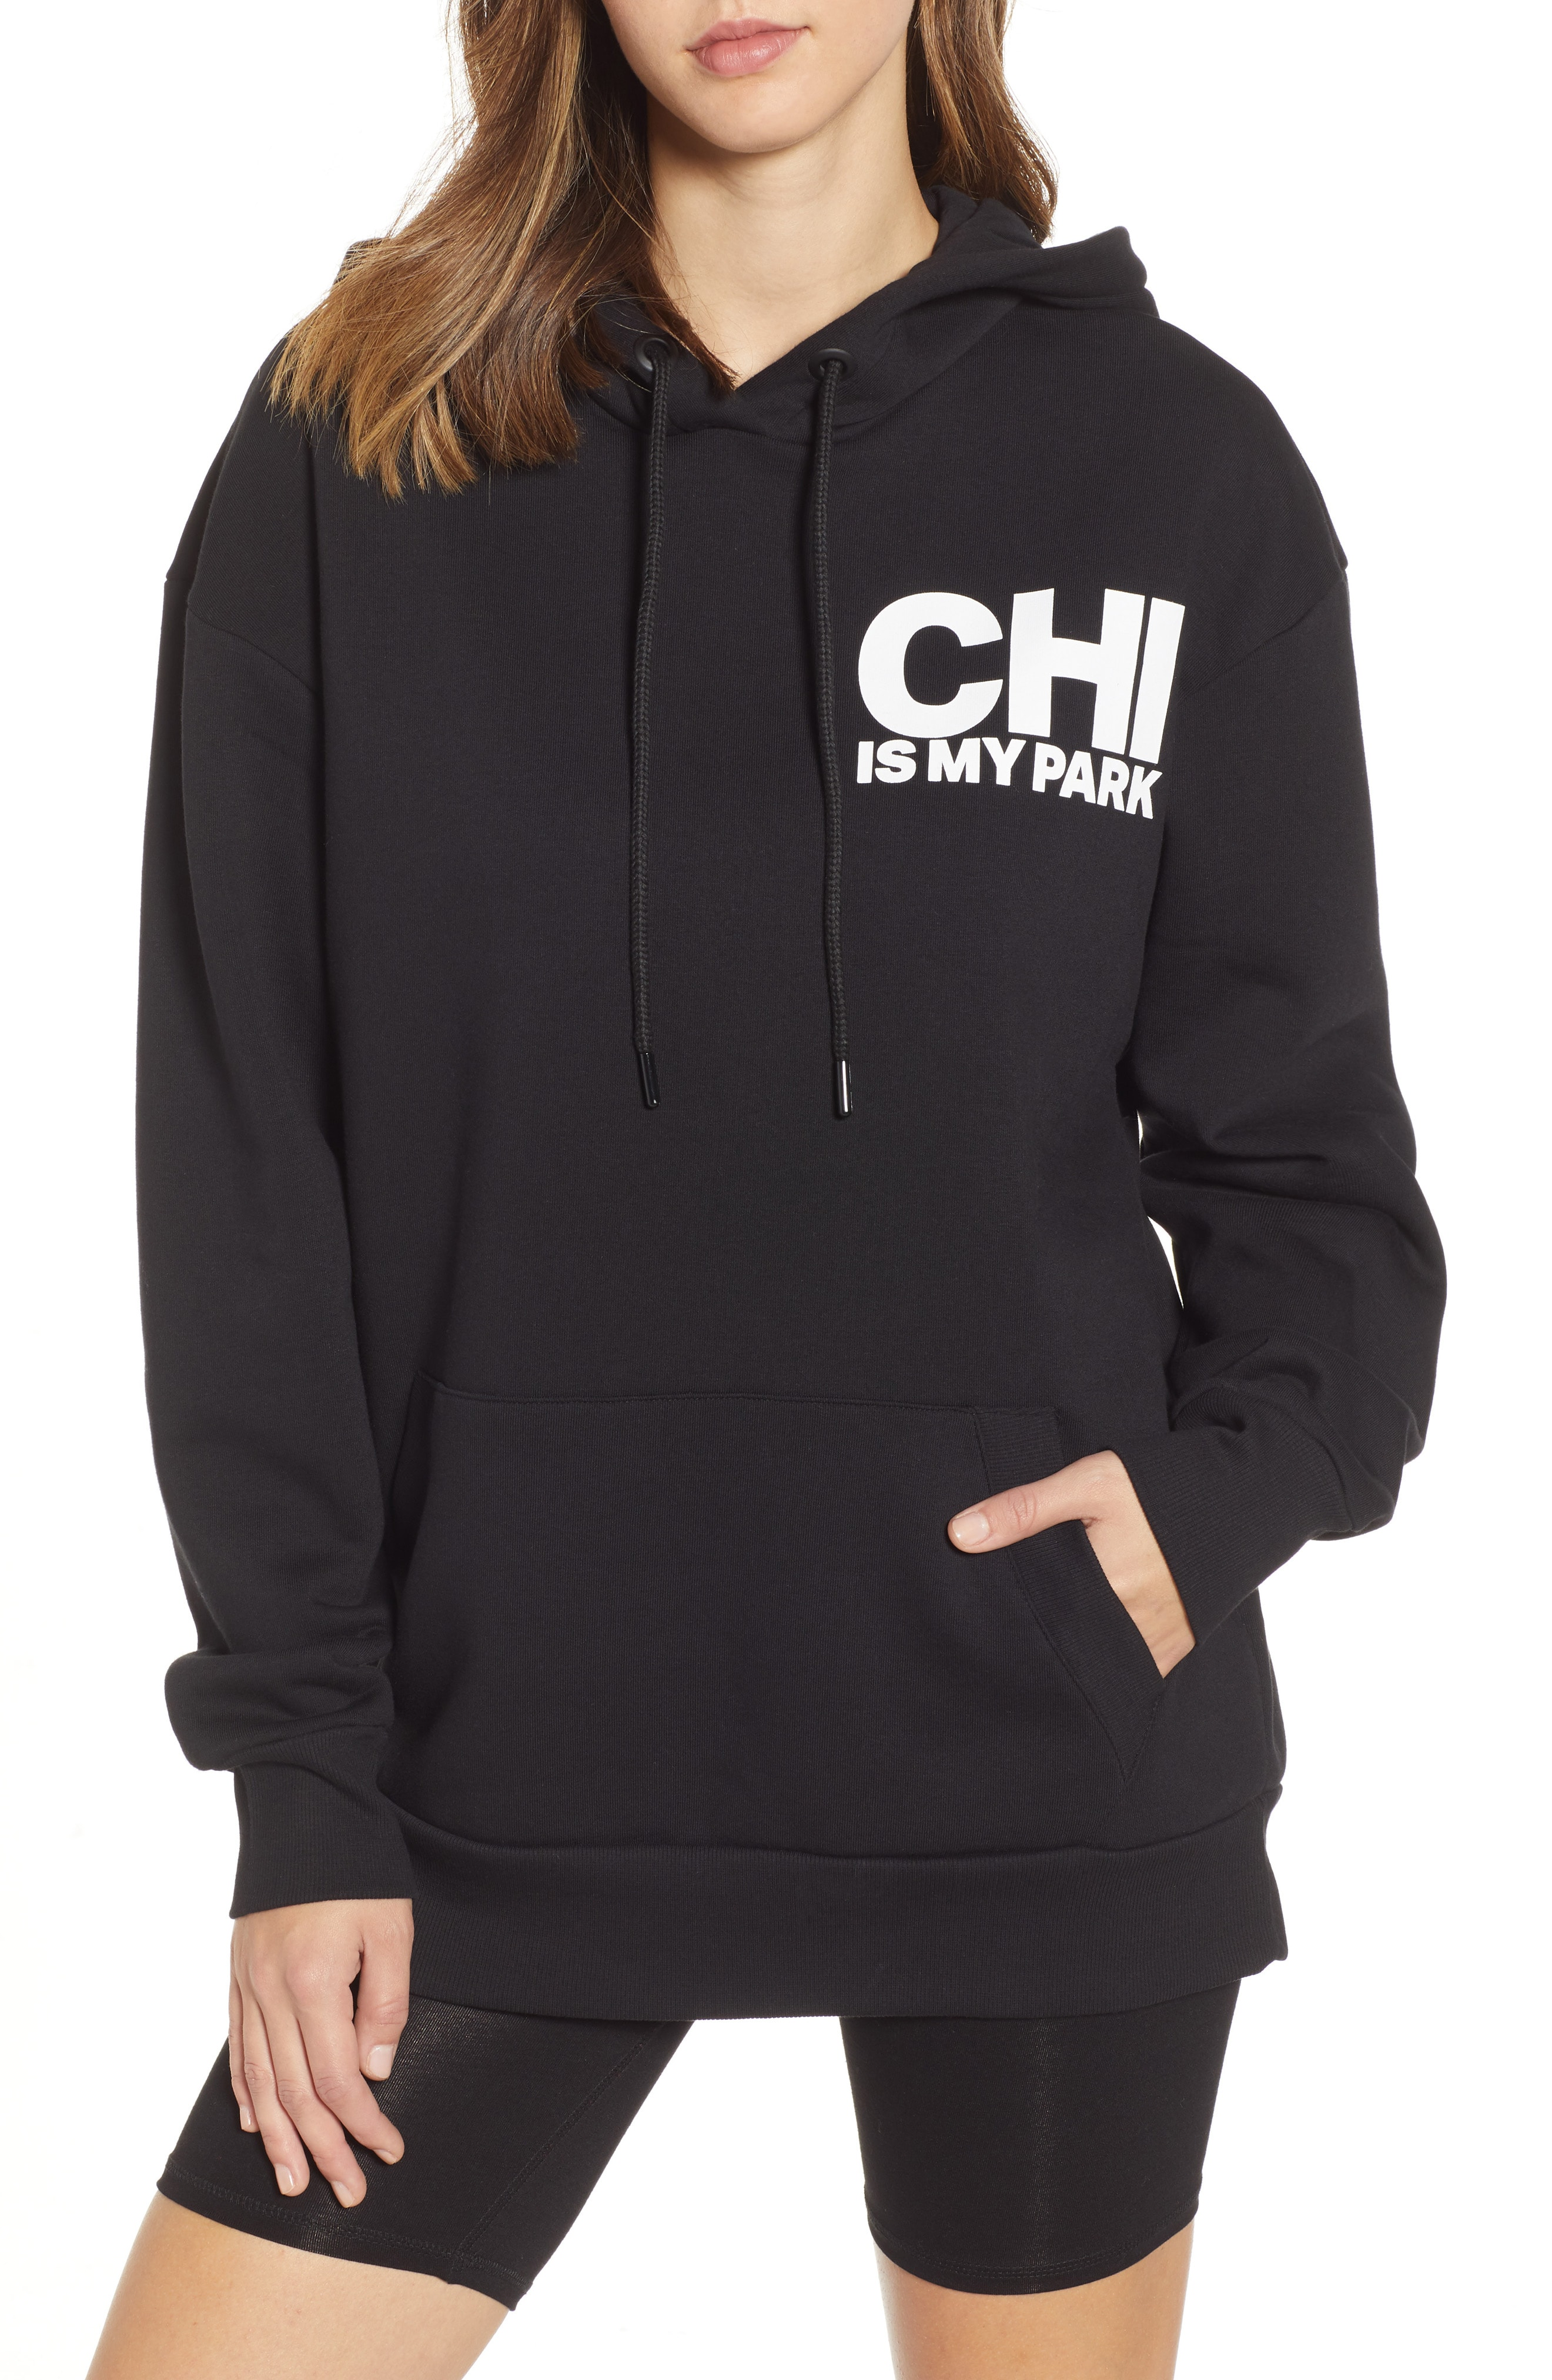 IVY PARK On The Run Chicago Graphic Hoodie